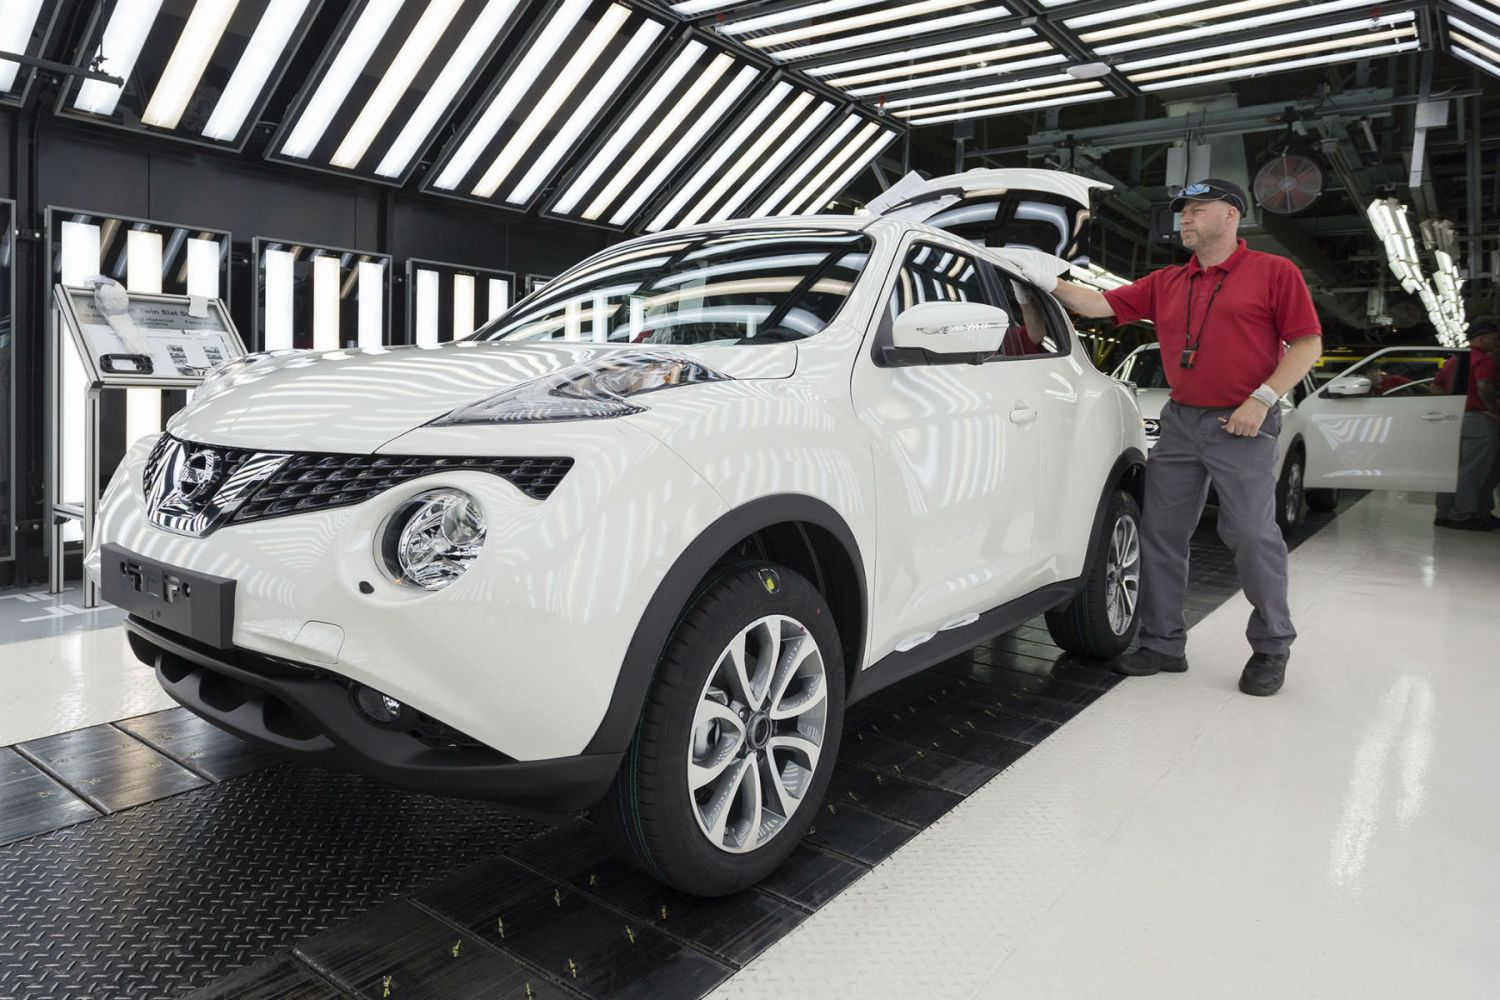 Nissan threatens legal action over Vote Leave copyright abuse